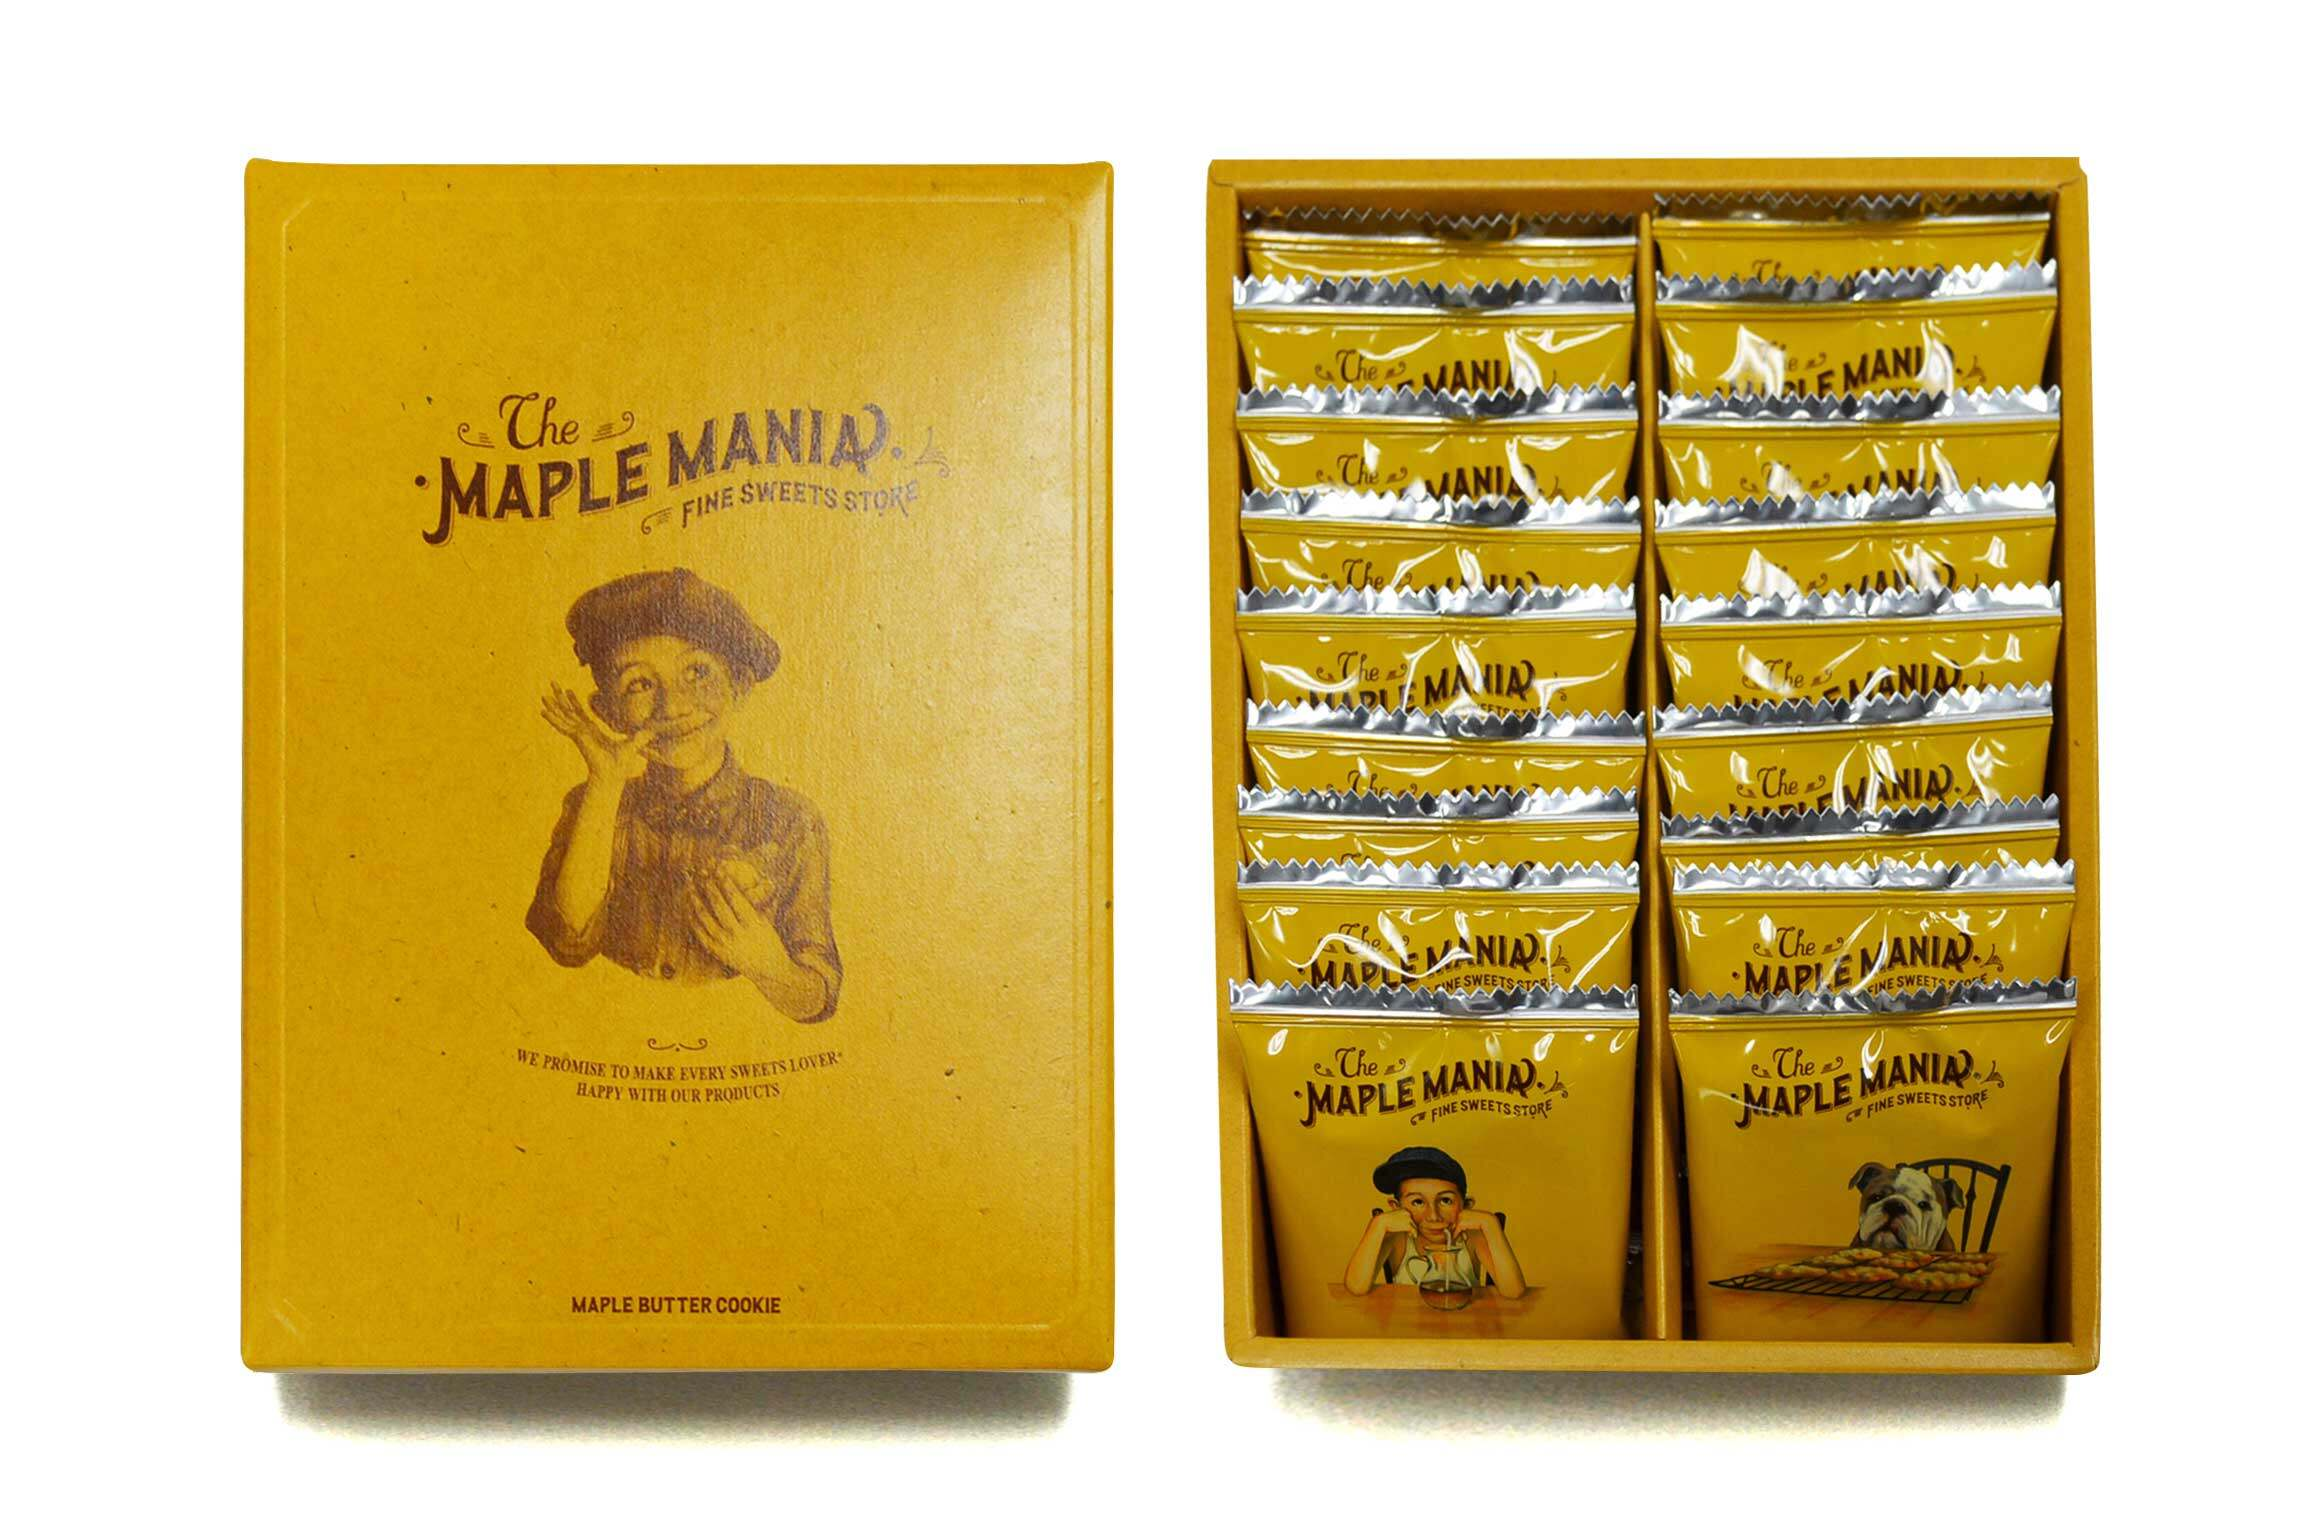 THE MAPLE MANIA, 東京人氣甜品